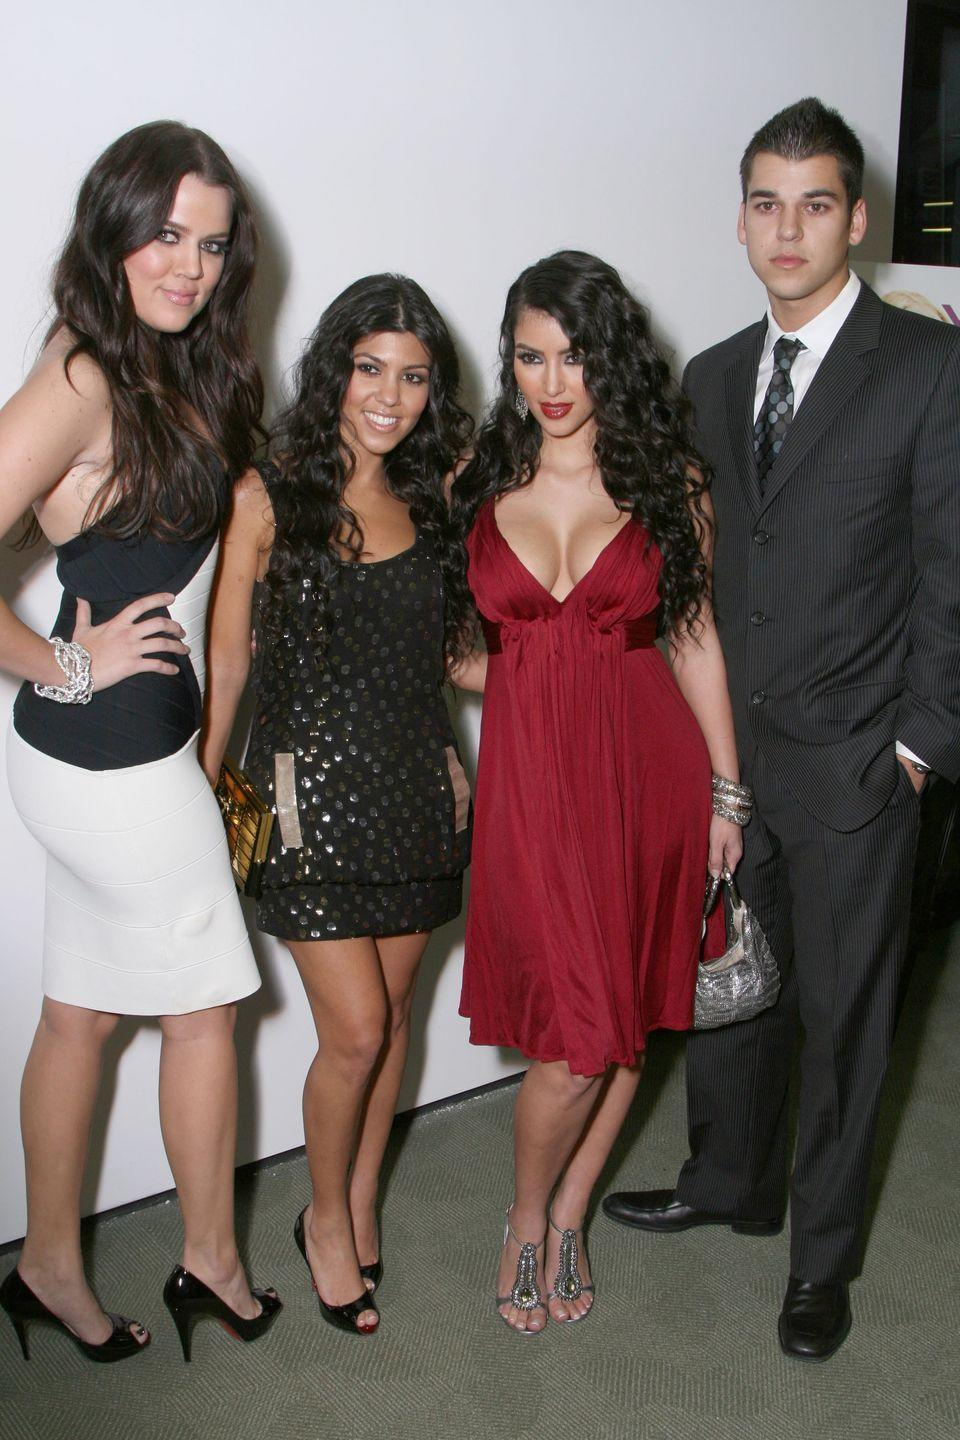 <p>Khloé, Kourt, Kim, and Rob pose for a nice family pic at the season one premiere of <em>Keeping up with the Kardashians</em>. Oh, how times have changed.</p>